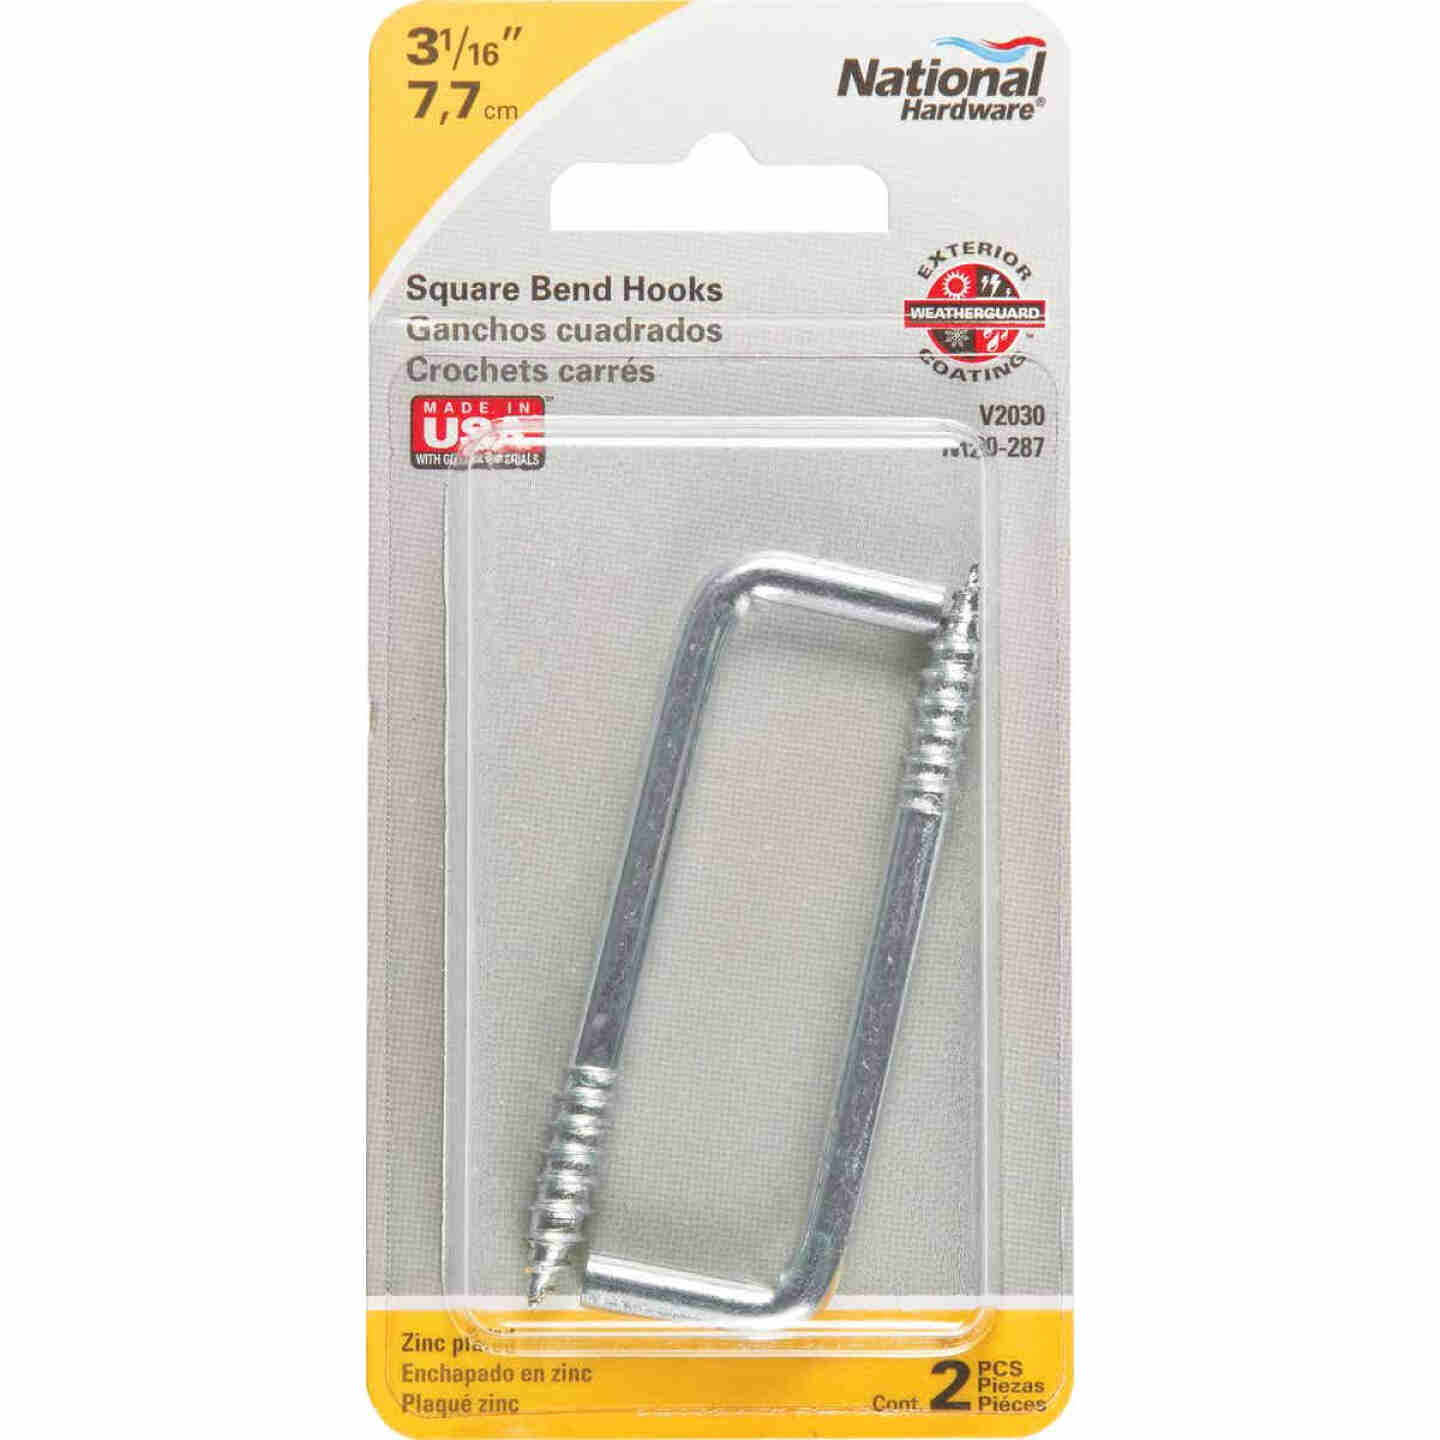 National 2030 Series #104 Square Bend Screw Hook Shoulder Hook (2 Count) Image 2